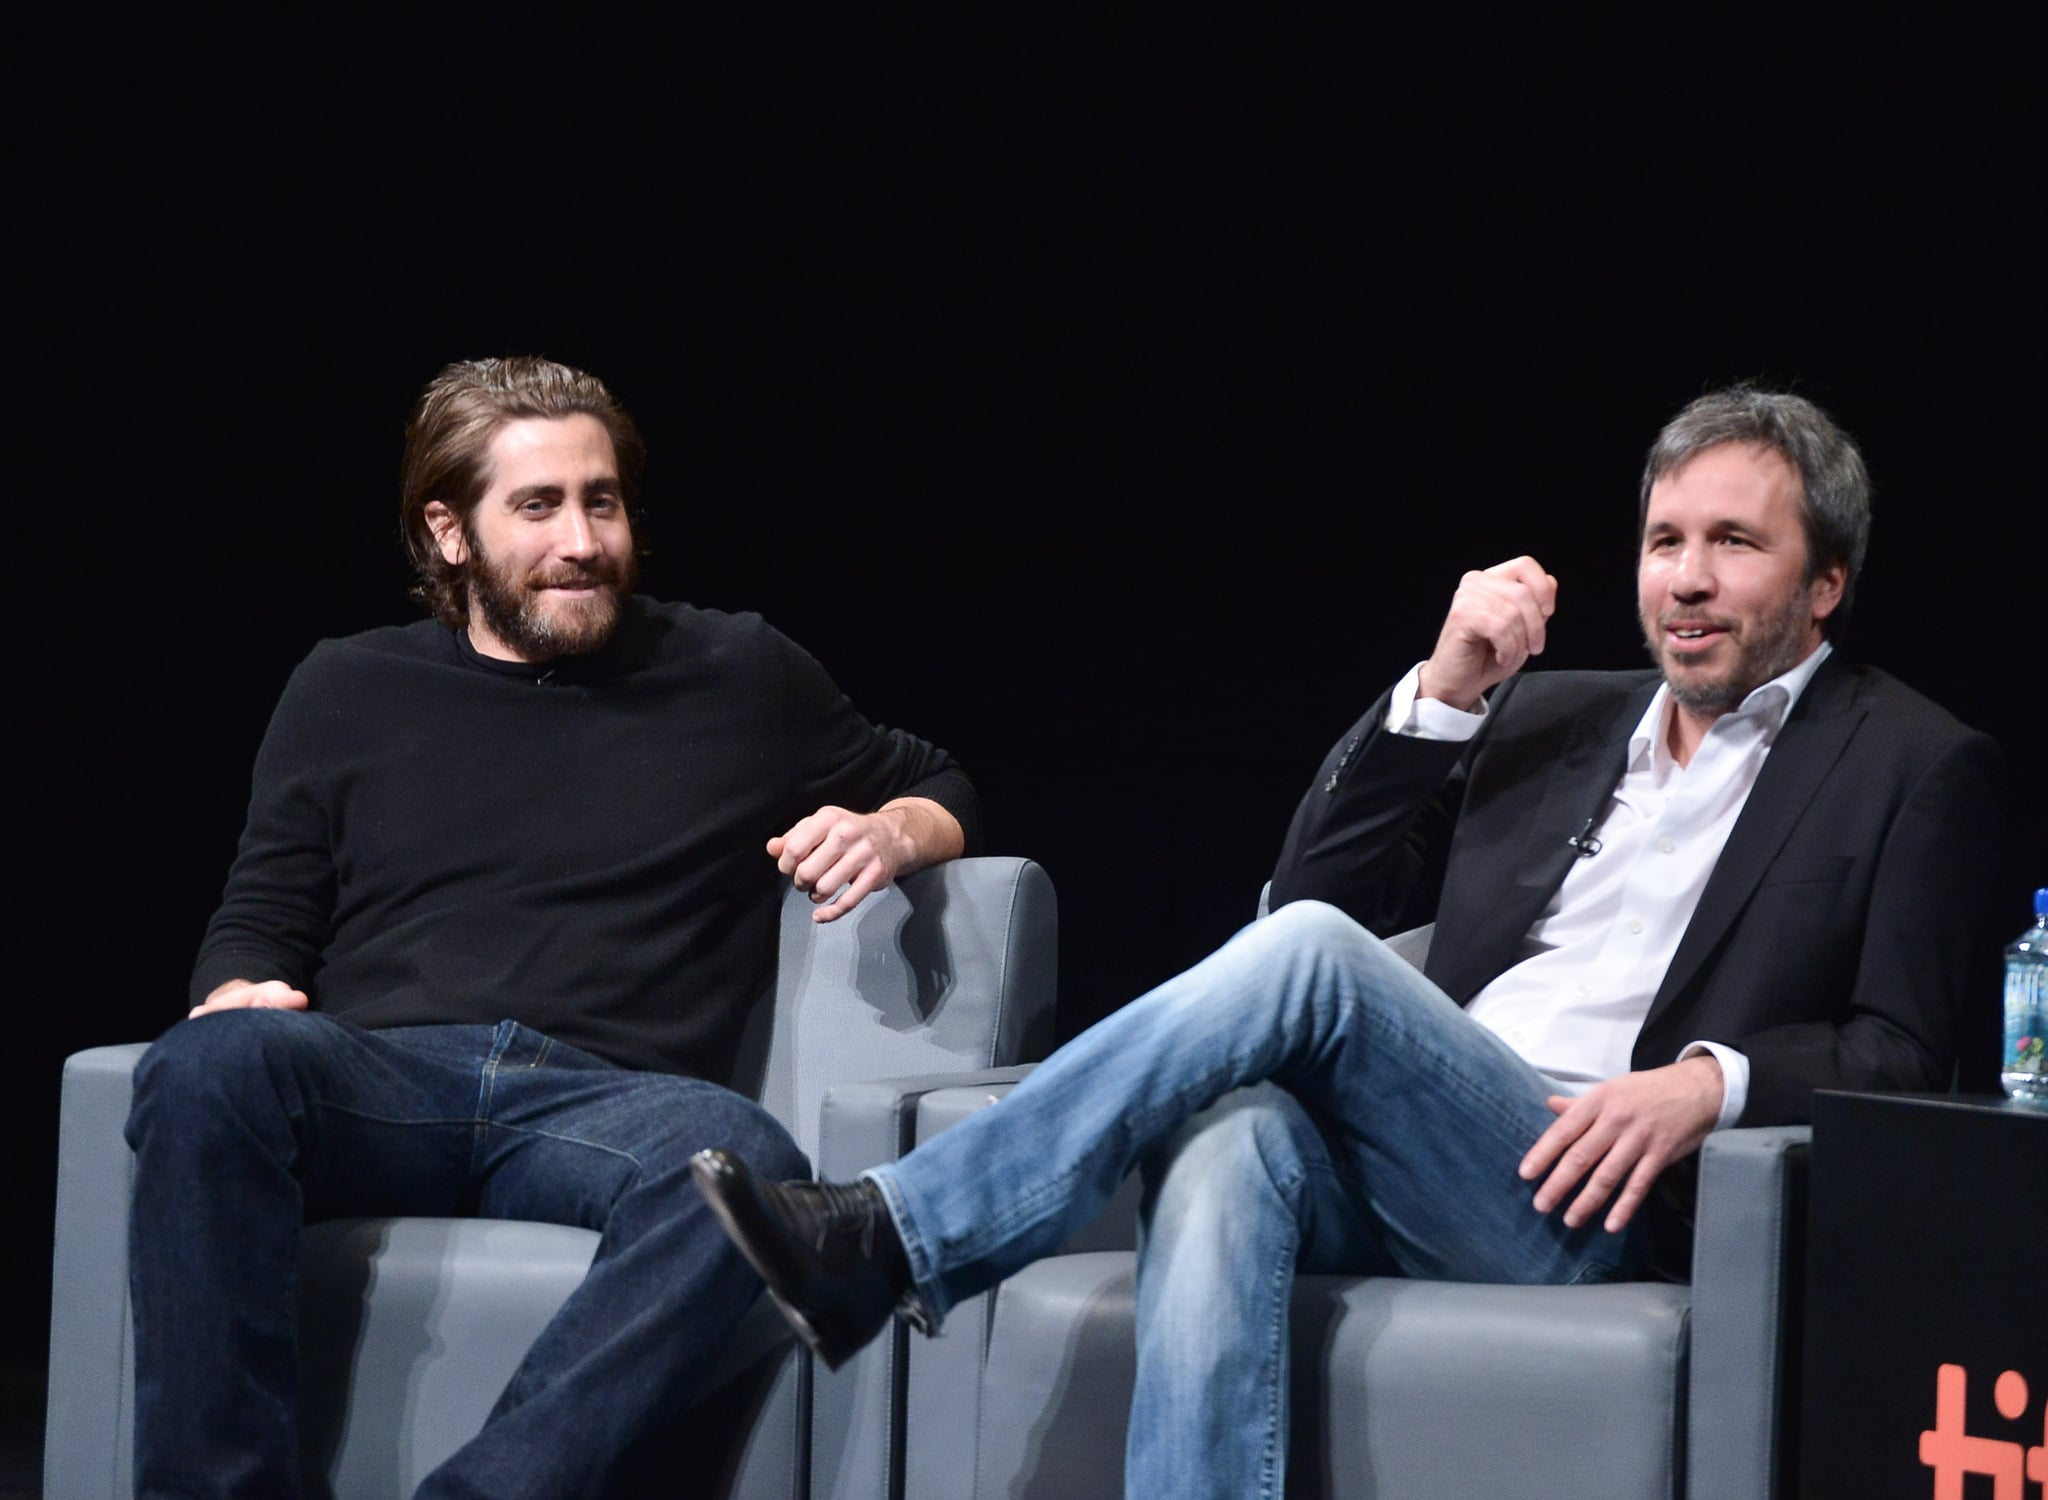 Jake and Denis both wore jeans to the event.